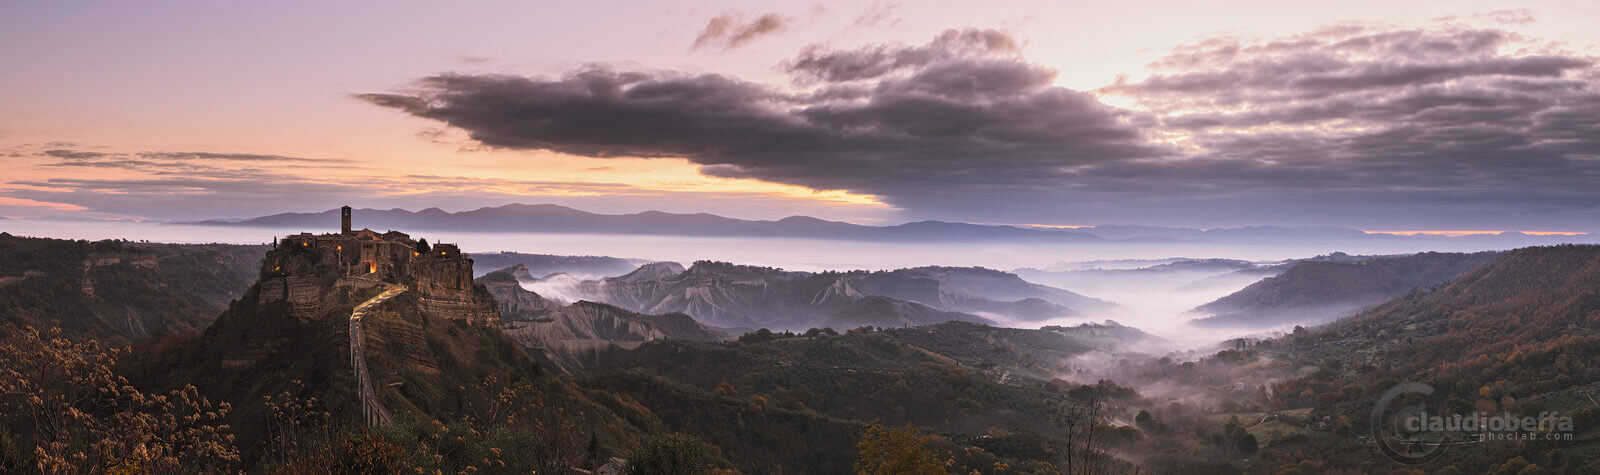 Sunrise, Civita di Bagnoregio, Dying town, Italy, Mist, Fog, Valley, Badlands, Mountains, Forests, Town, Clouds, Panorama